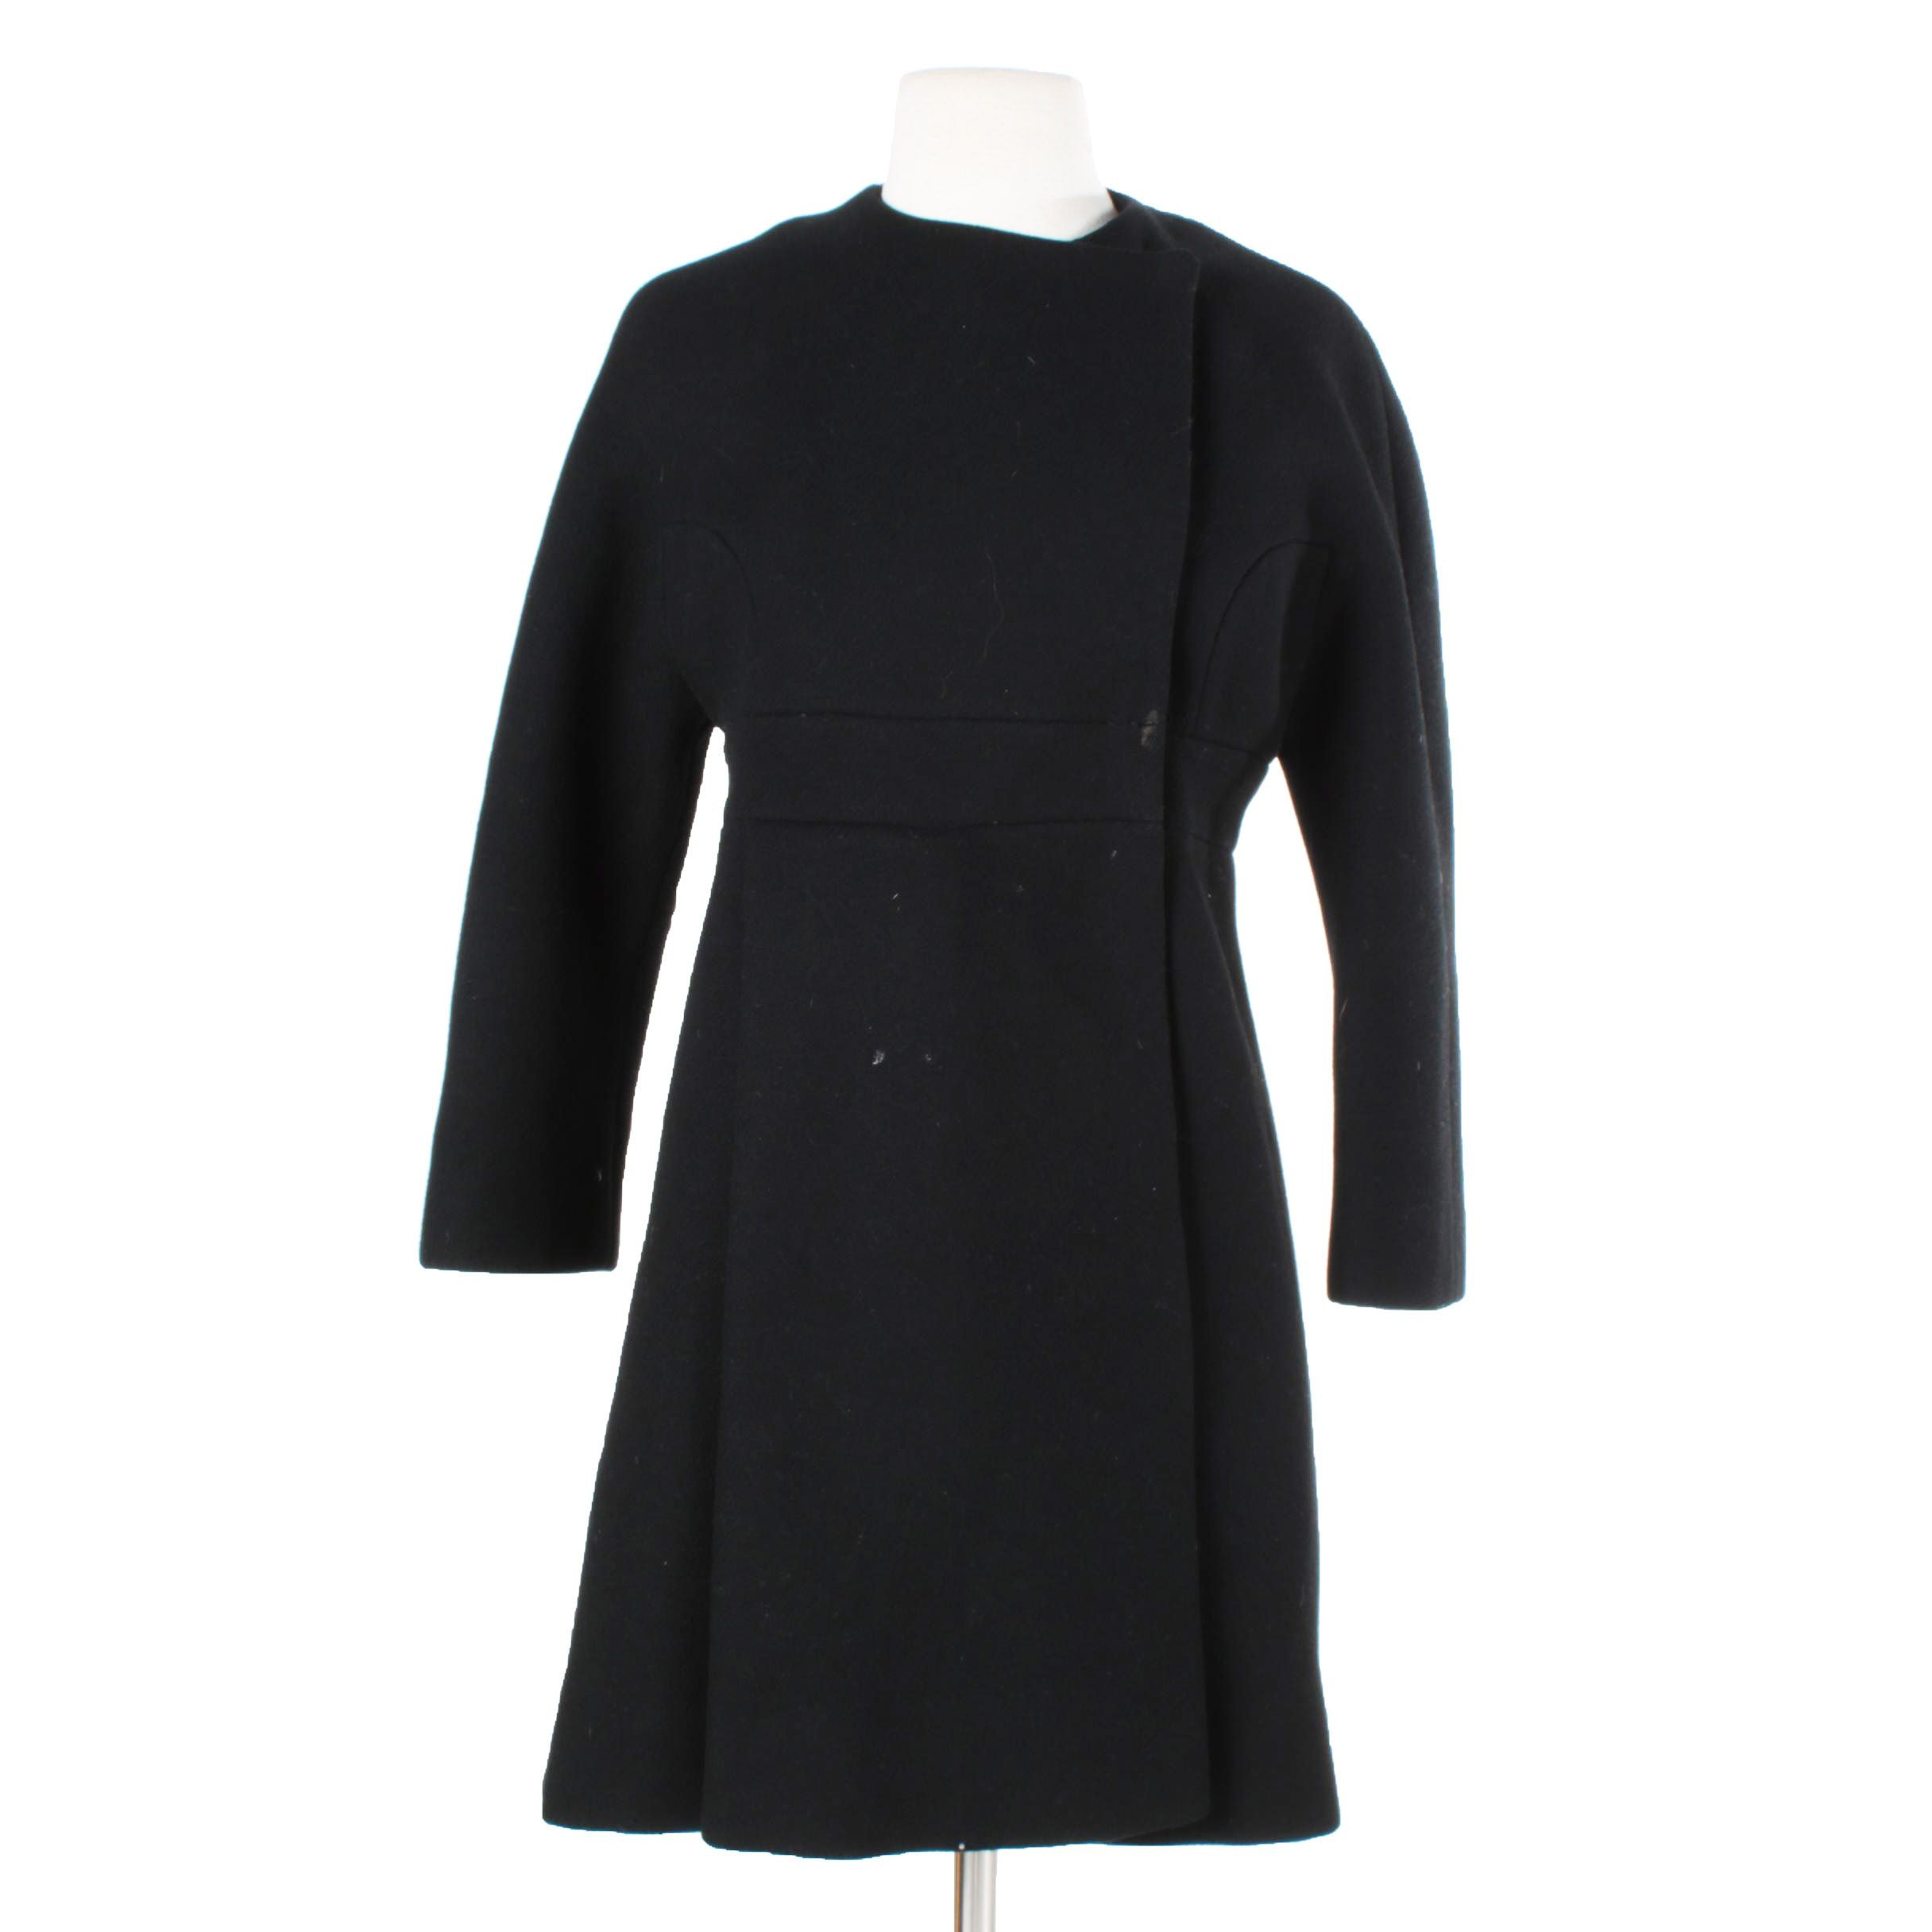 1960s Saks Fifth Avenue Black Wool Mod Coat